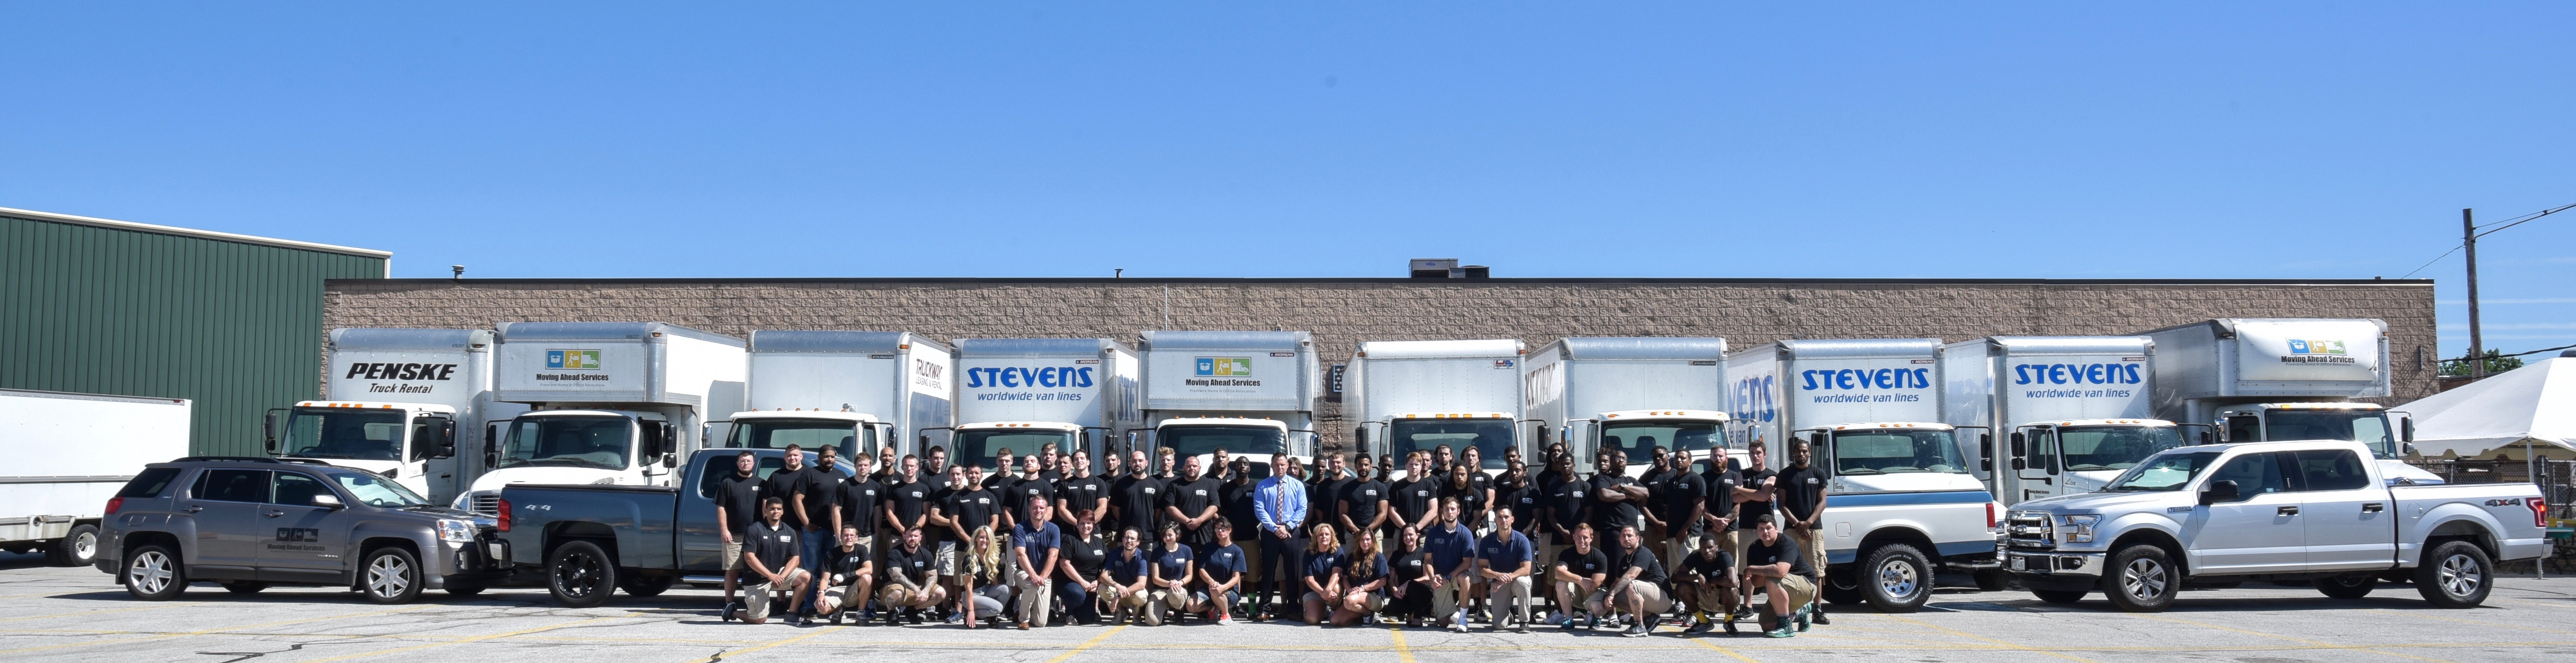 Moving Ahead Services team